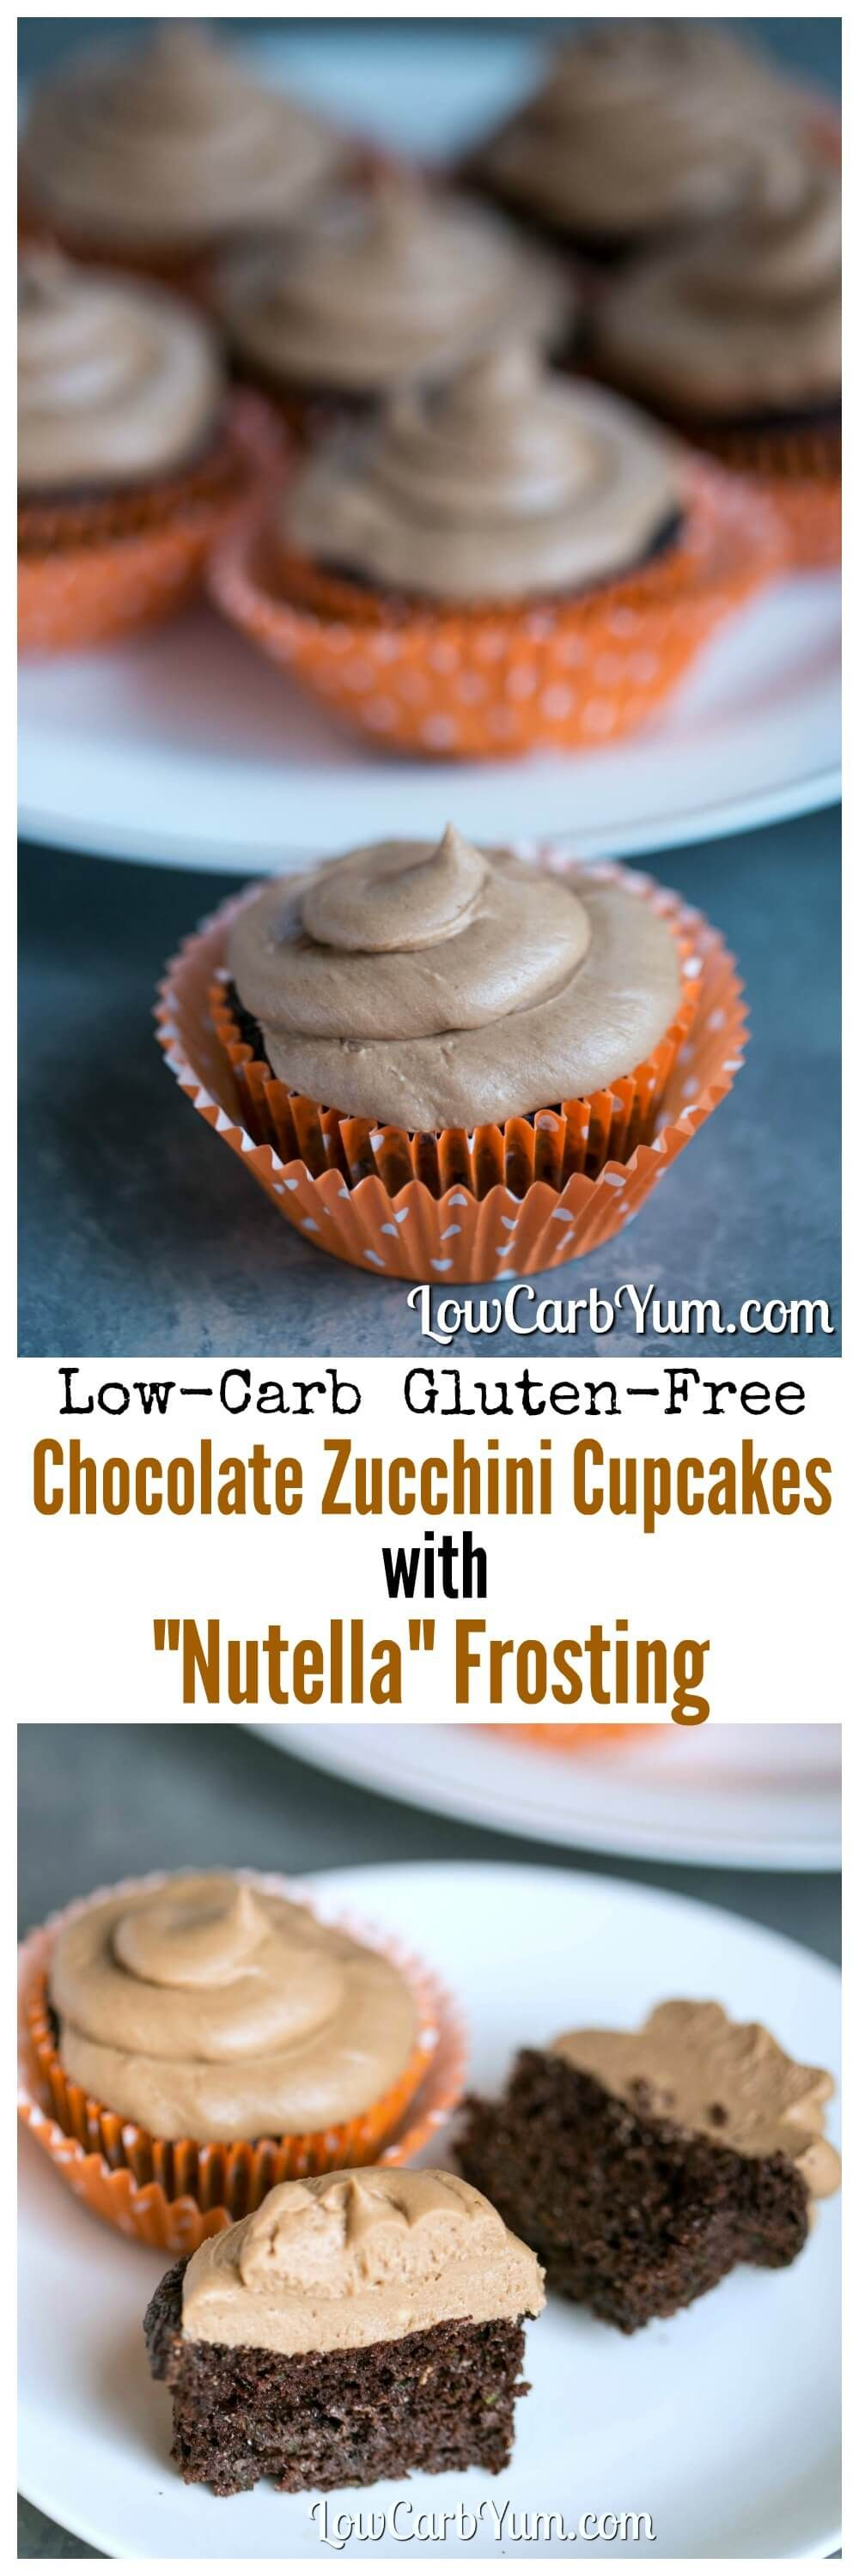 chocolate low carb cupcakes with nutella frosting recipe. Black Bedroom Furniture Sets. Home Design Ideas